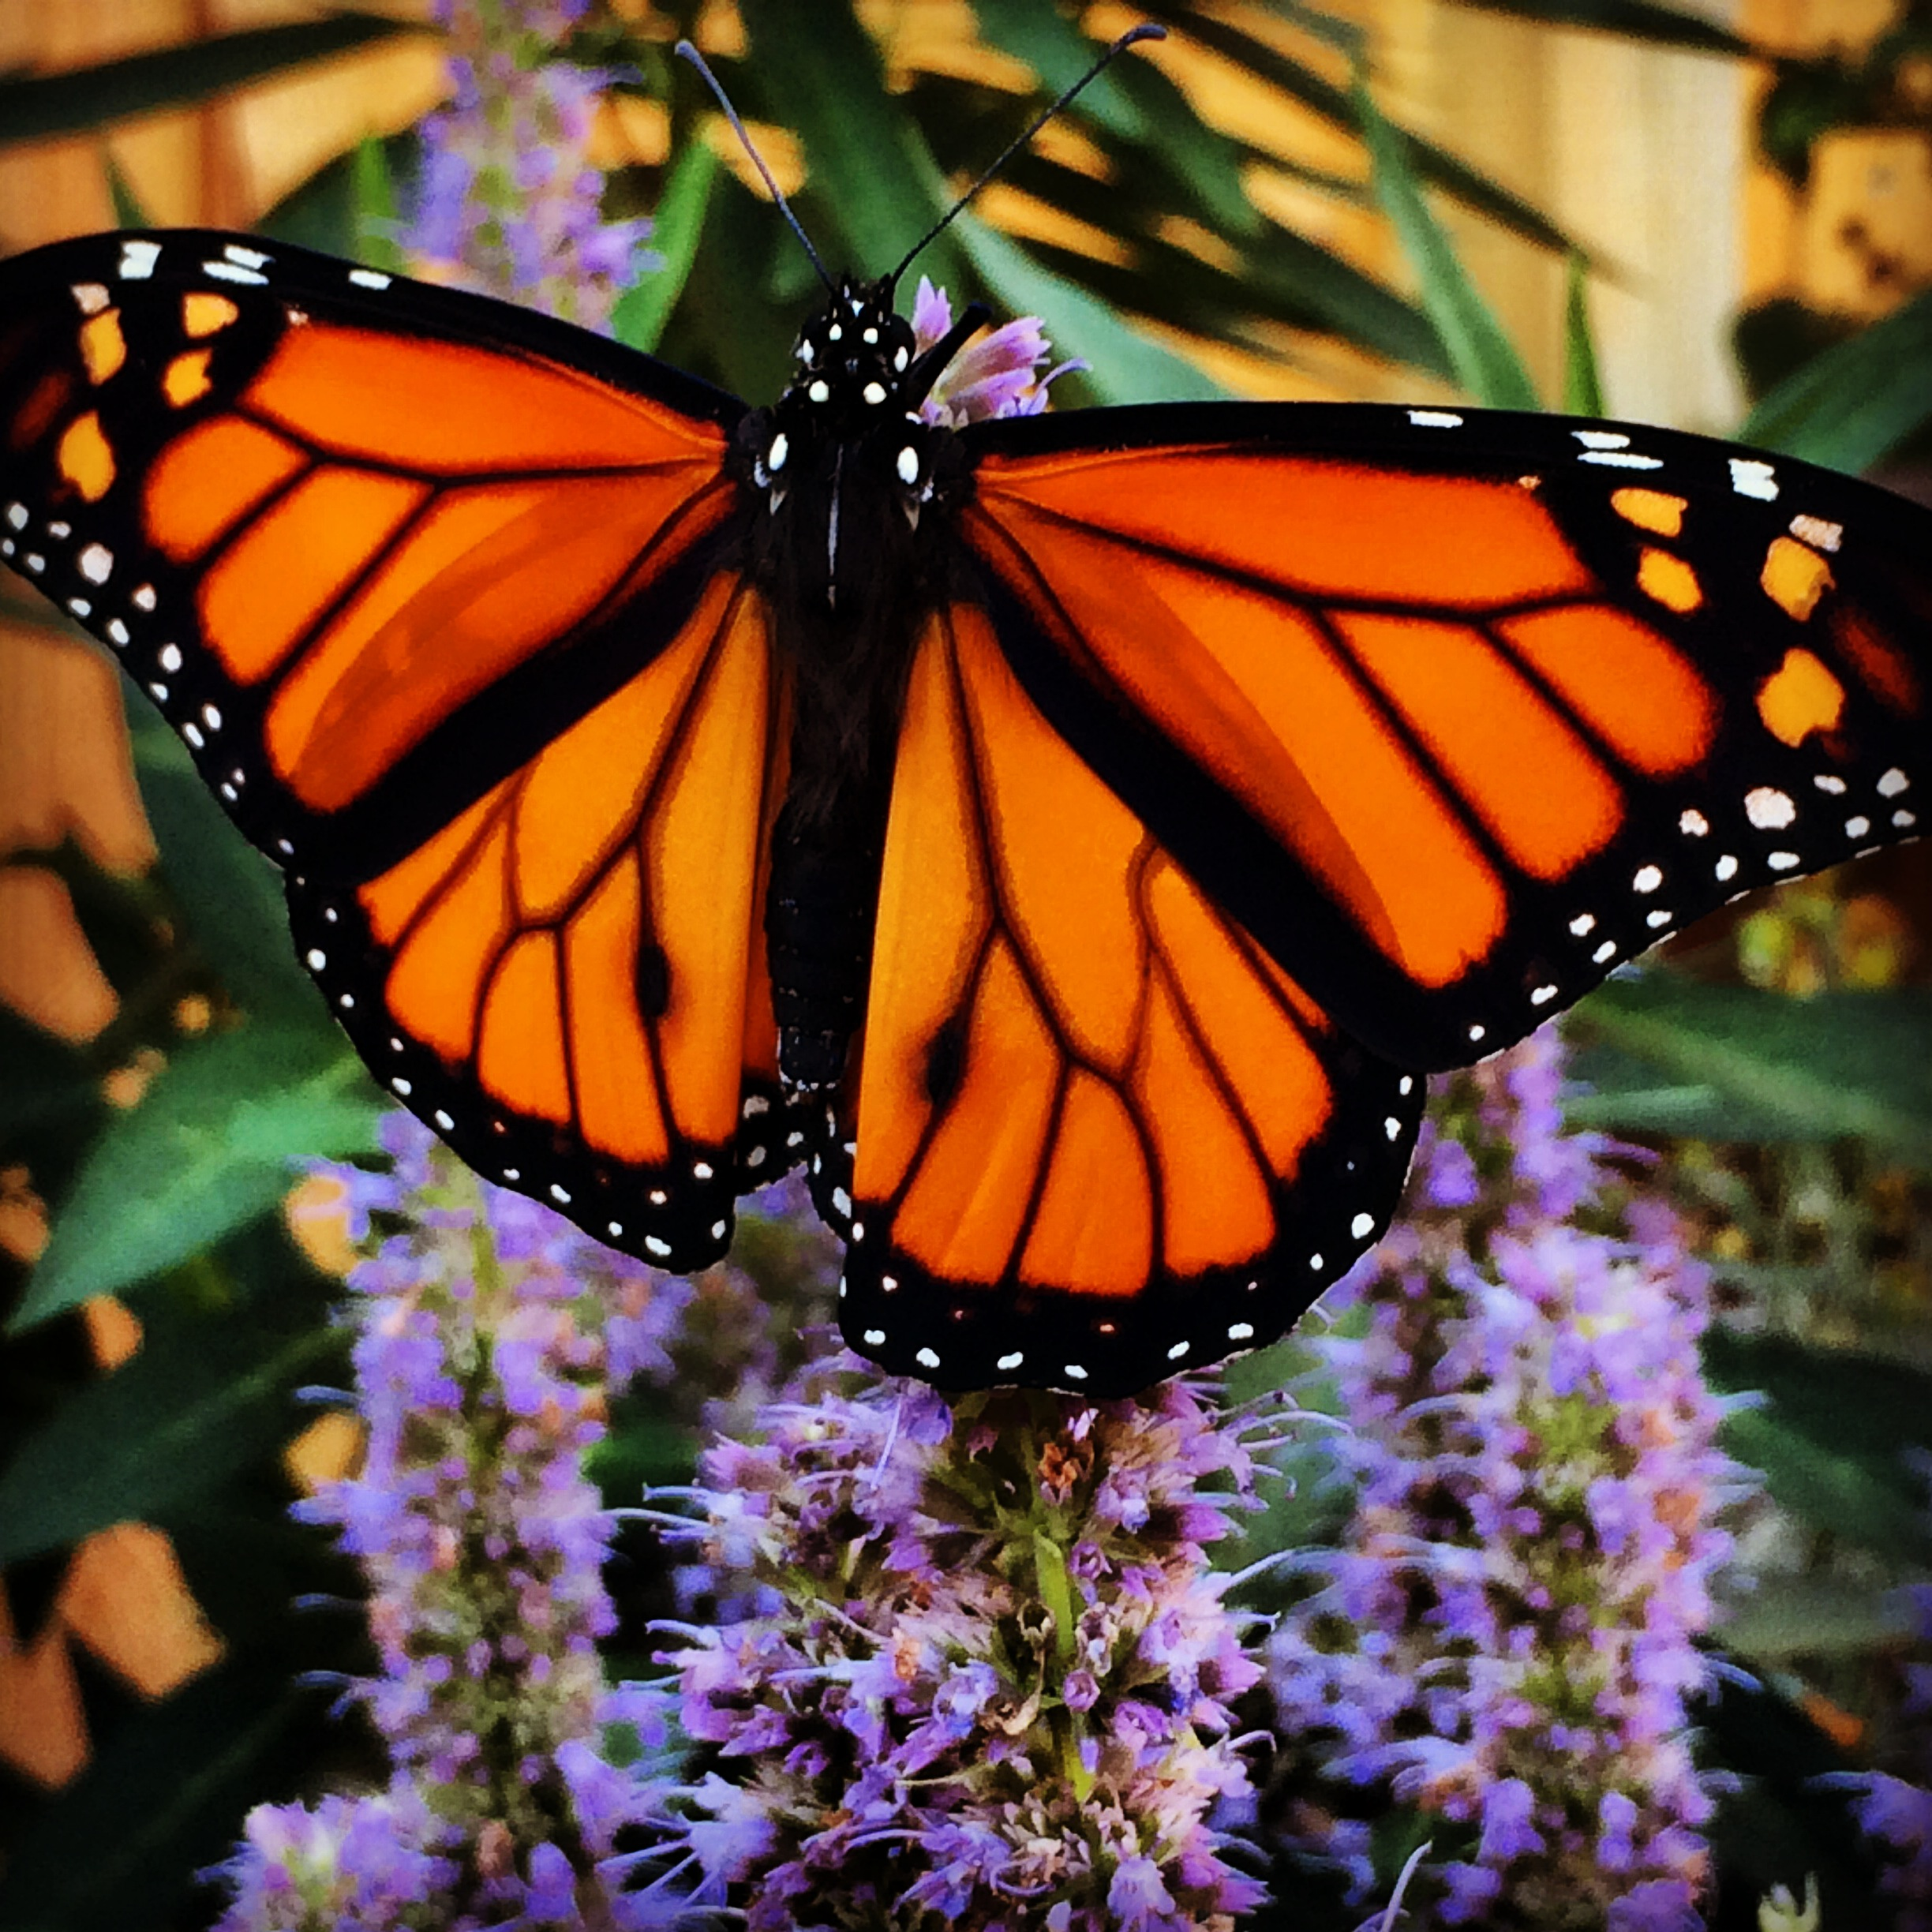 six ways to save monarchs the national wildlife federation blog